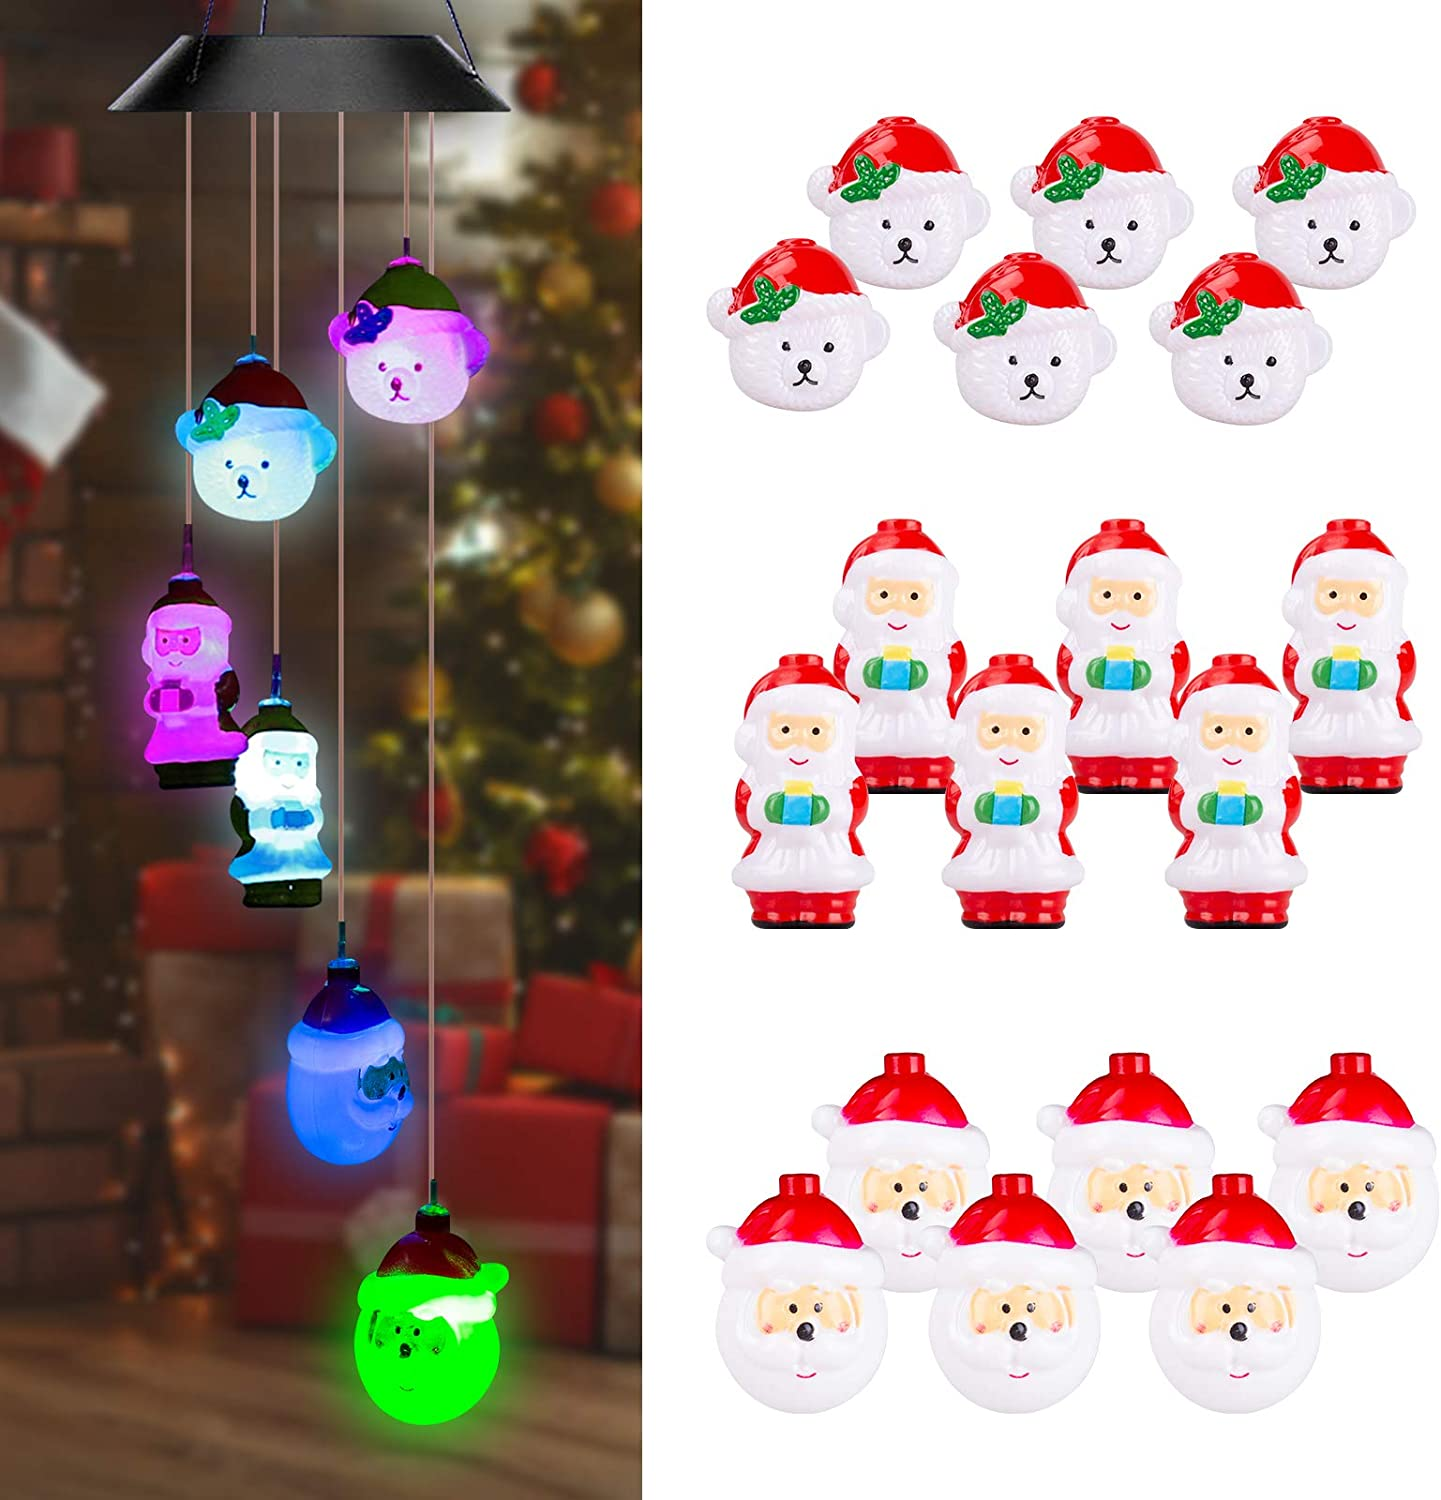 Christmas-Decorations-Outdoor-Lights, Solar Powered Christmas Tree Decor with 18 LED, Waterproof Solar Wind Chime Lights, Multicolor Christmas Lights Outdoor for Christmas, Gift, Holiday, Party